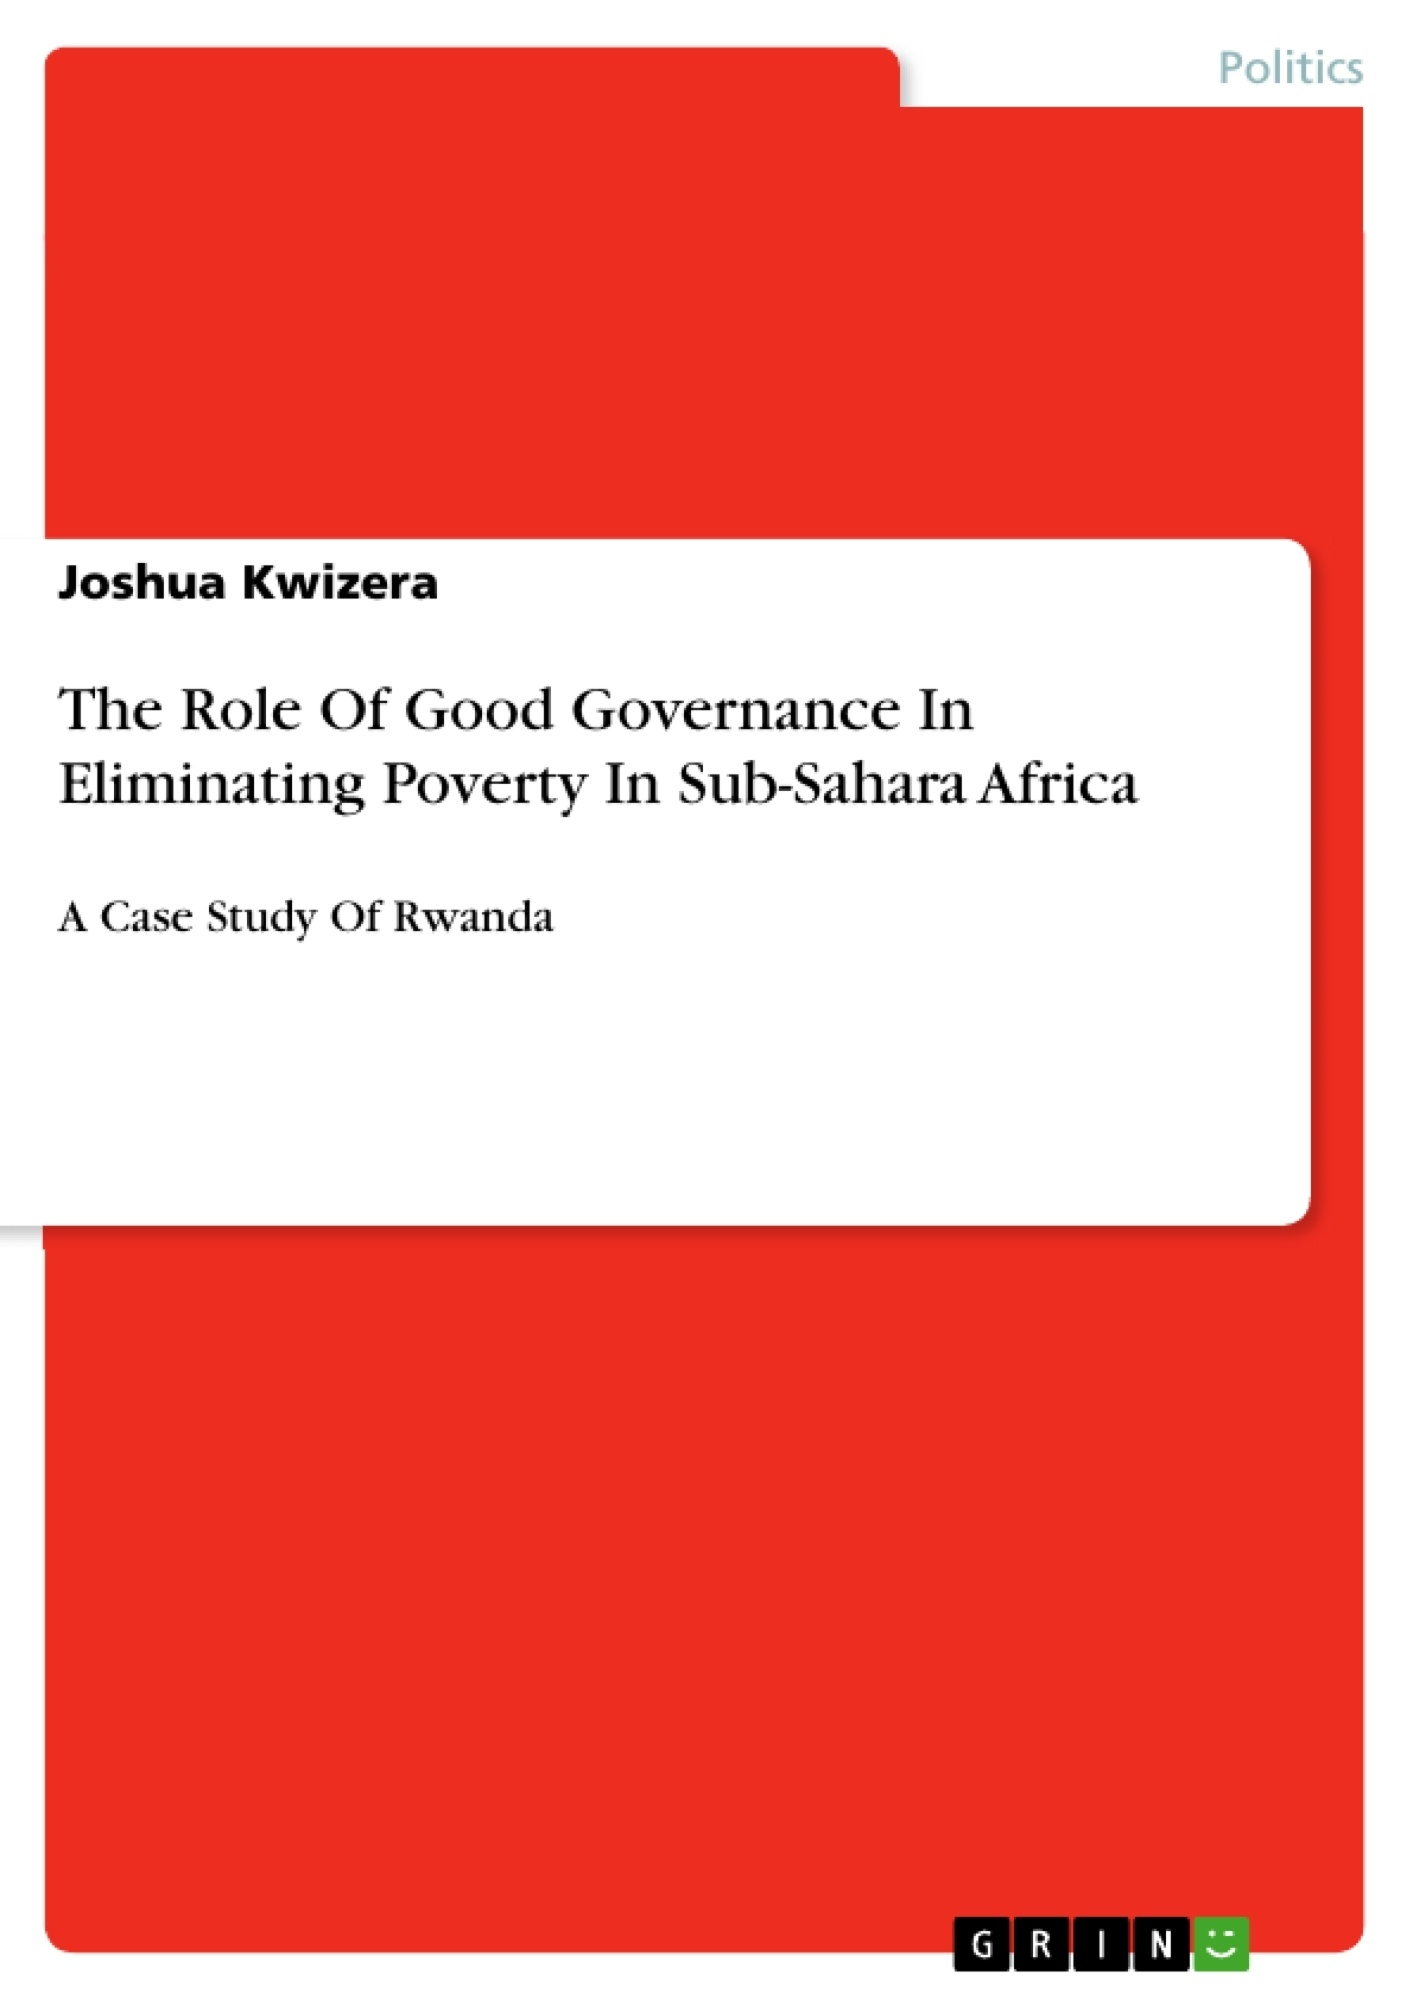 Title: The Role Of Good Governance In Eliminating Poverty In Sub-Sahara Africa